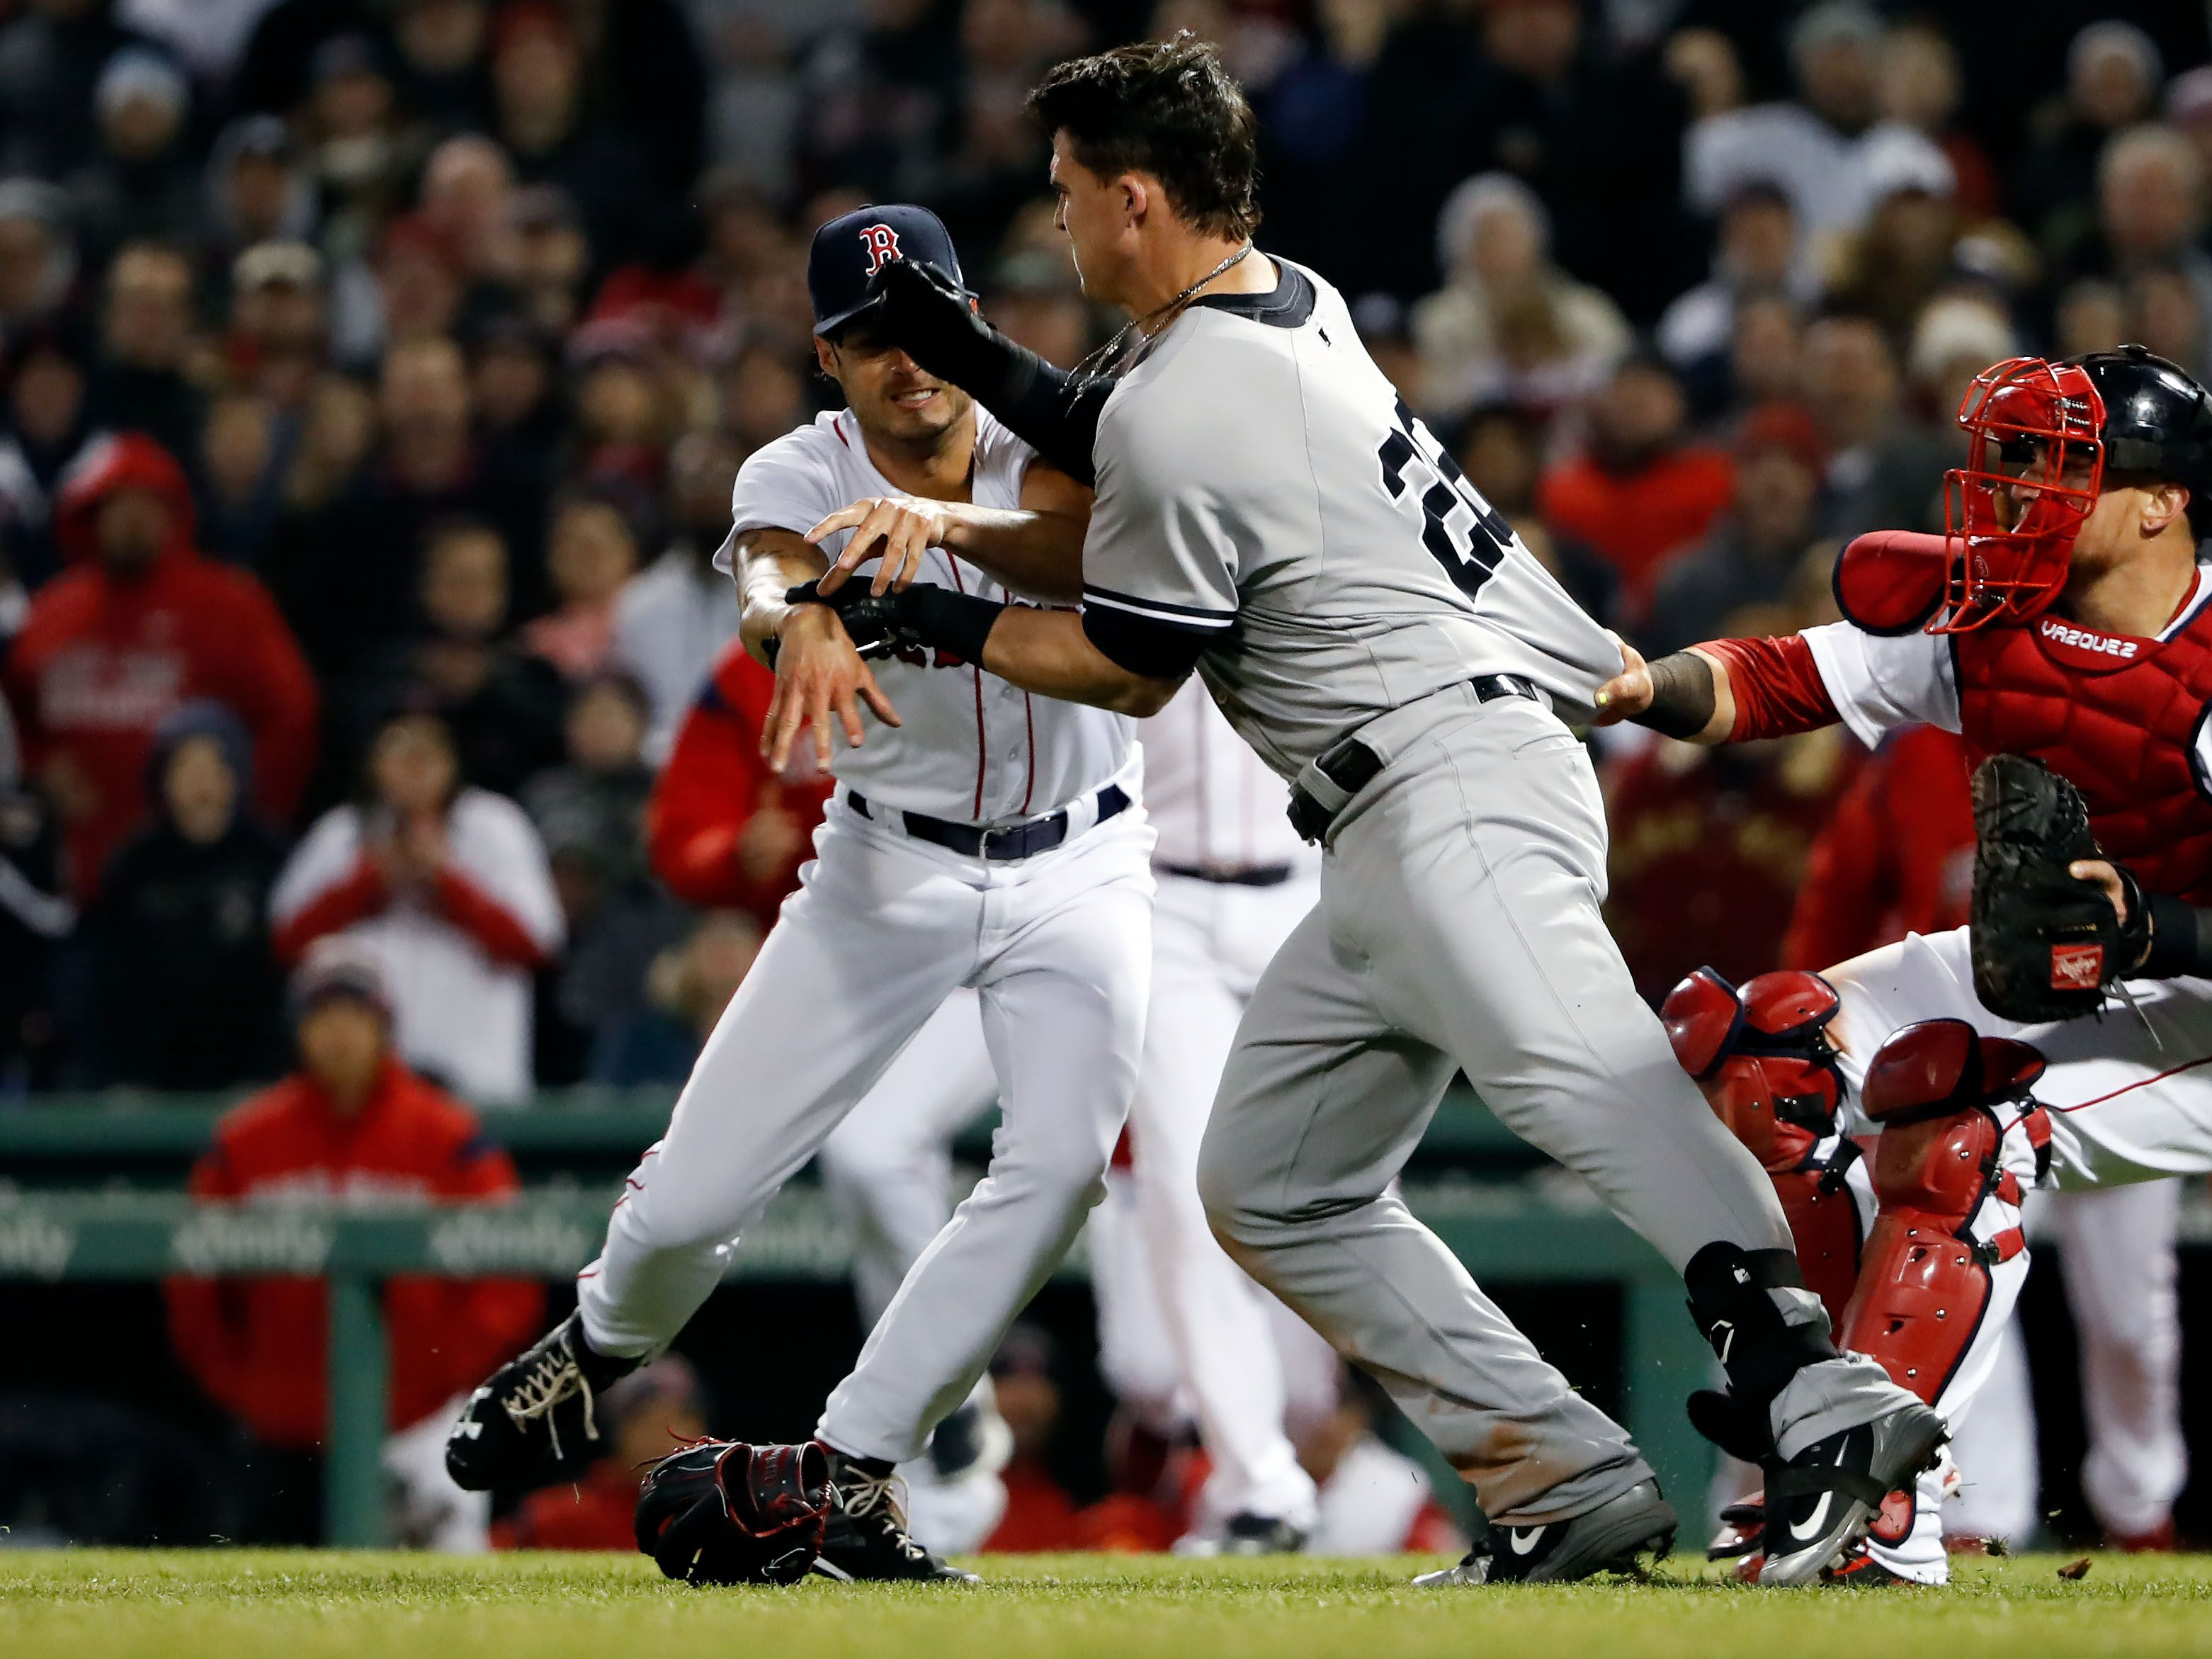 MLB to announce Yankees-Red Sox rivalry to visit London in 2019